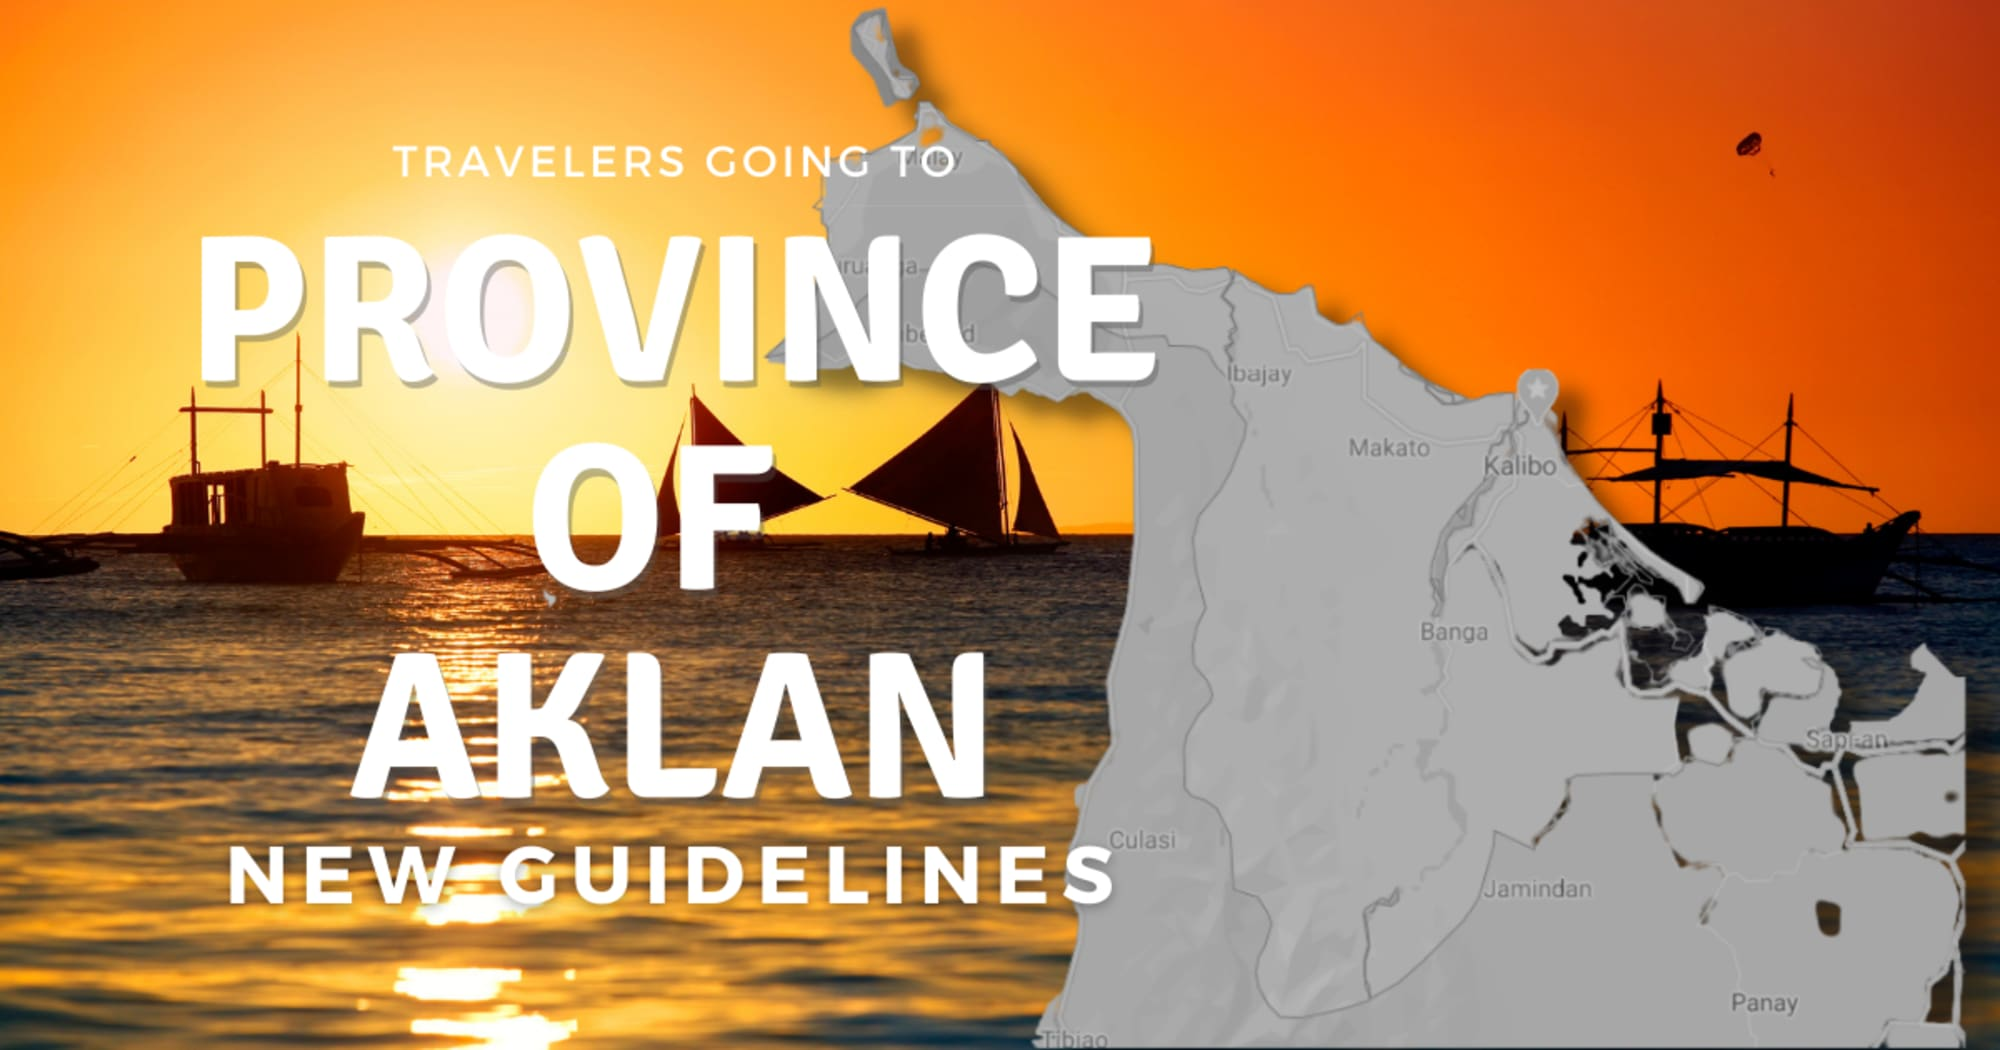 New Guidelines for Travelers going to Aklan Province